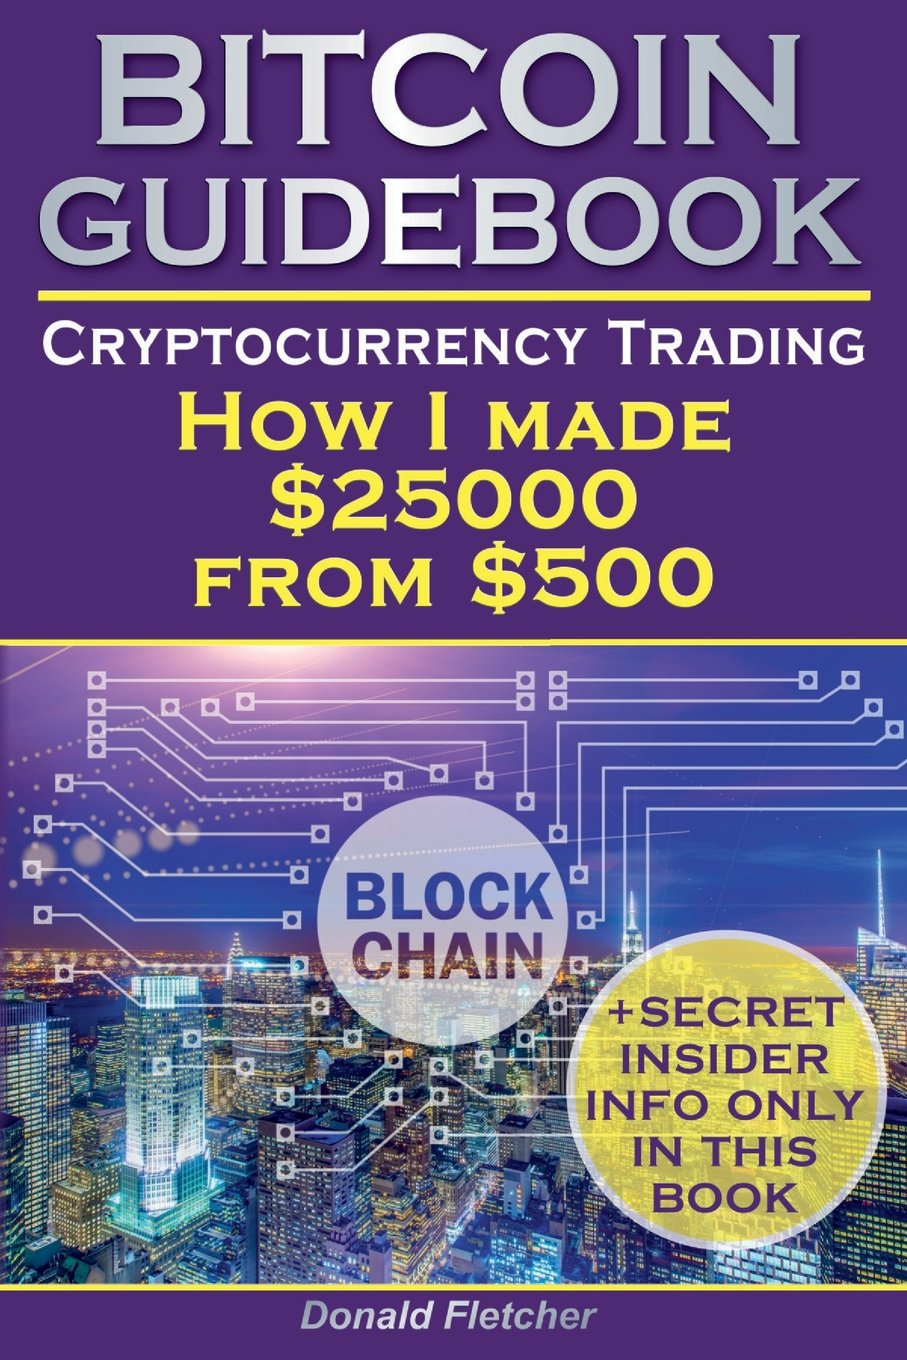 Crytocurrency And Trading: Or How I made $25000 from $500